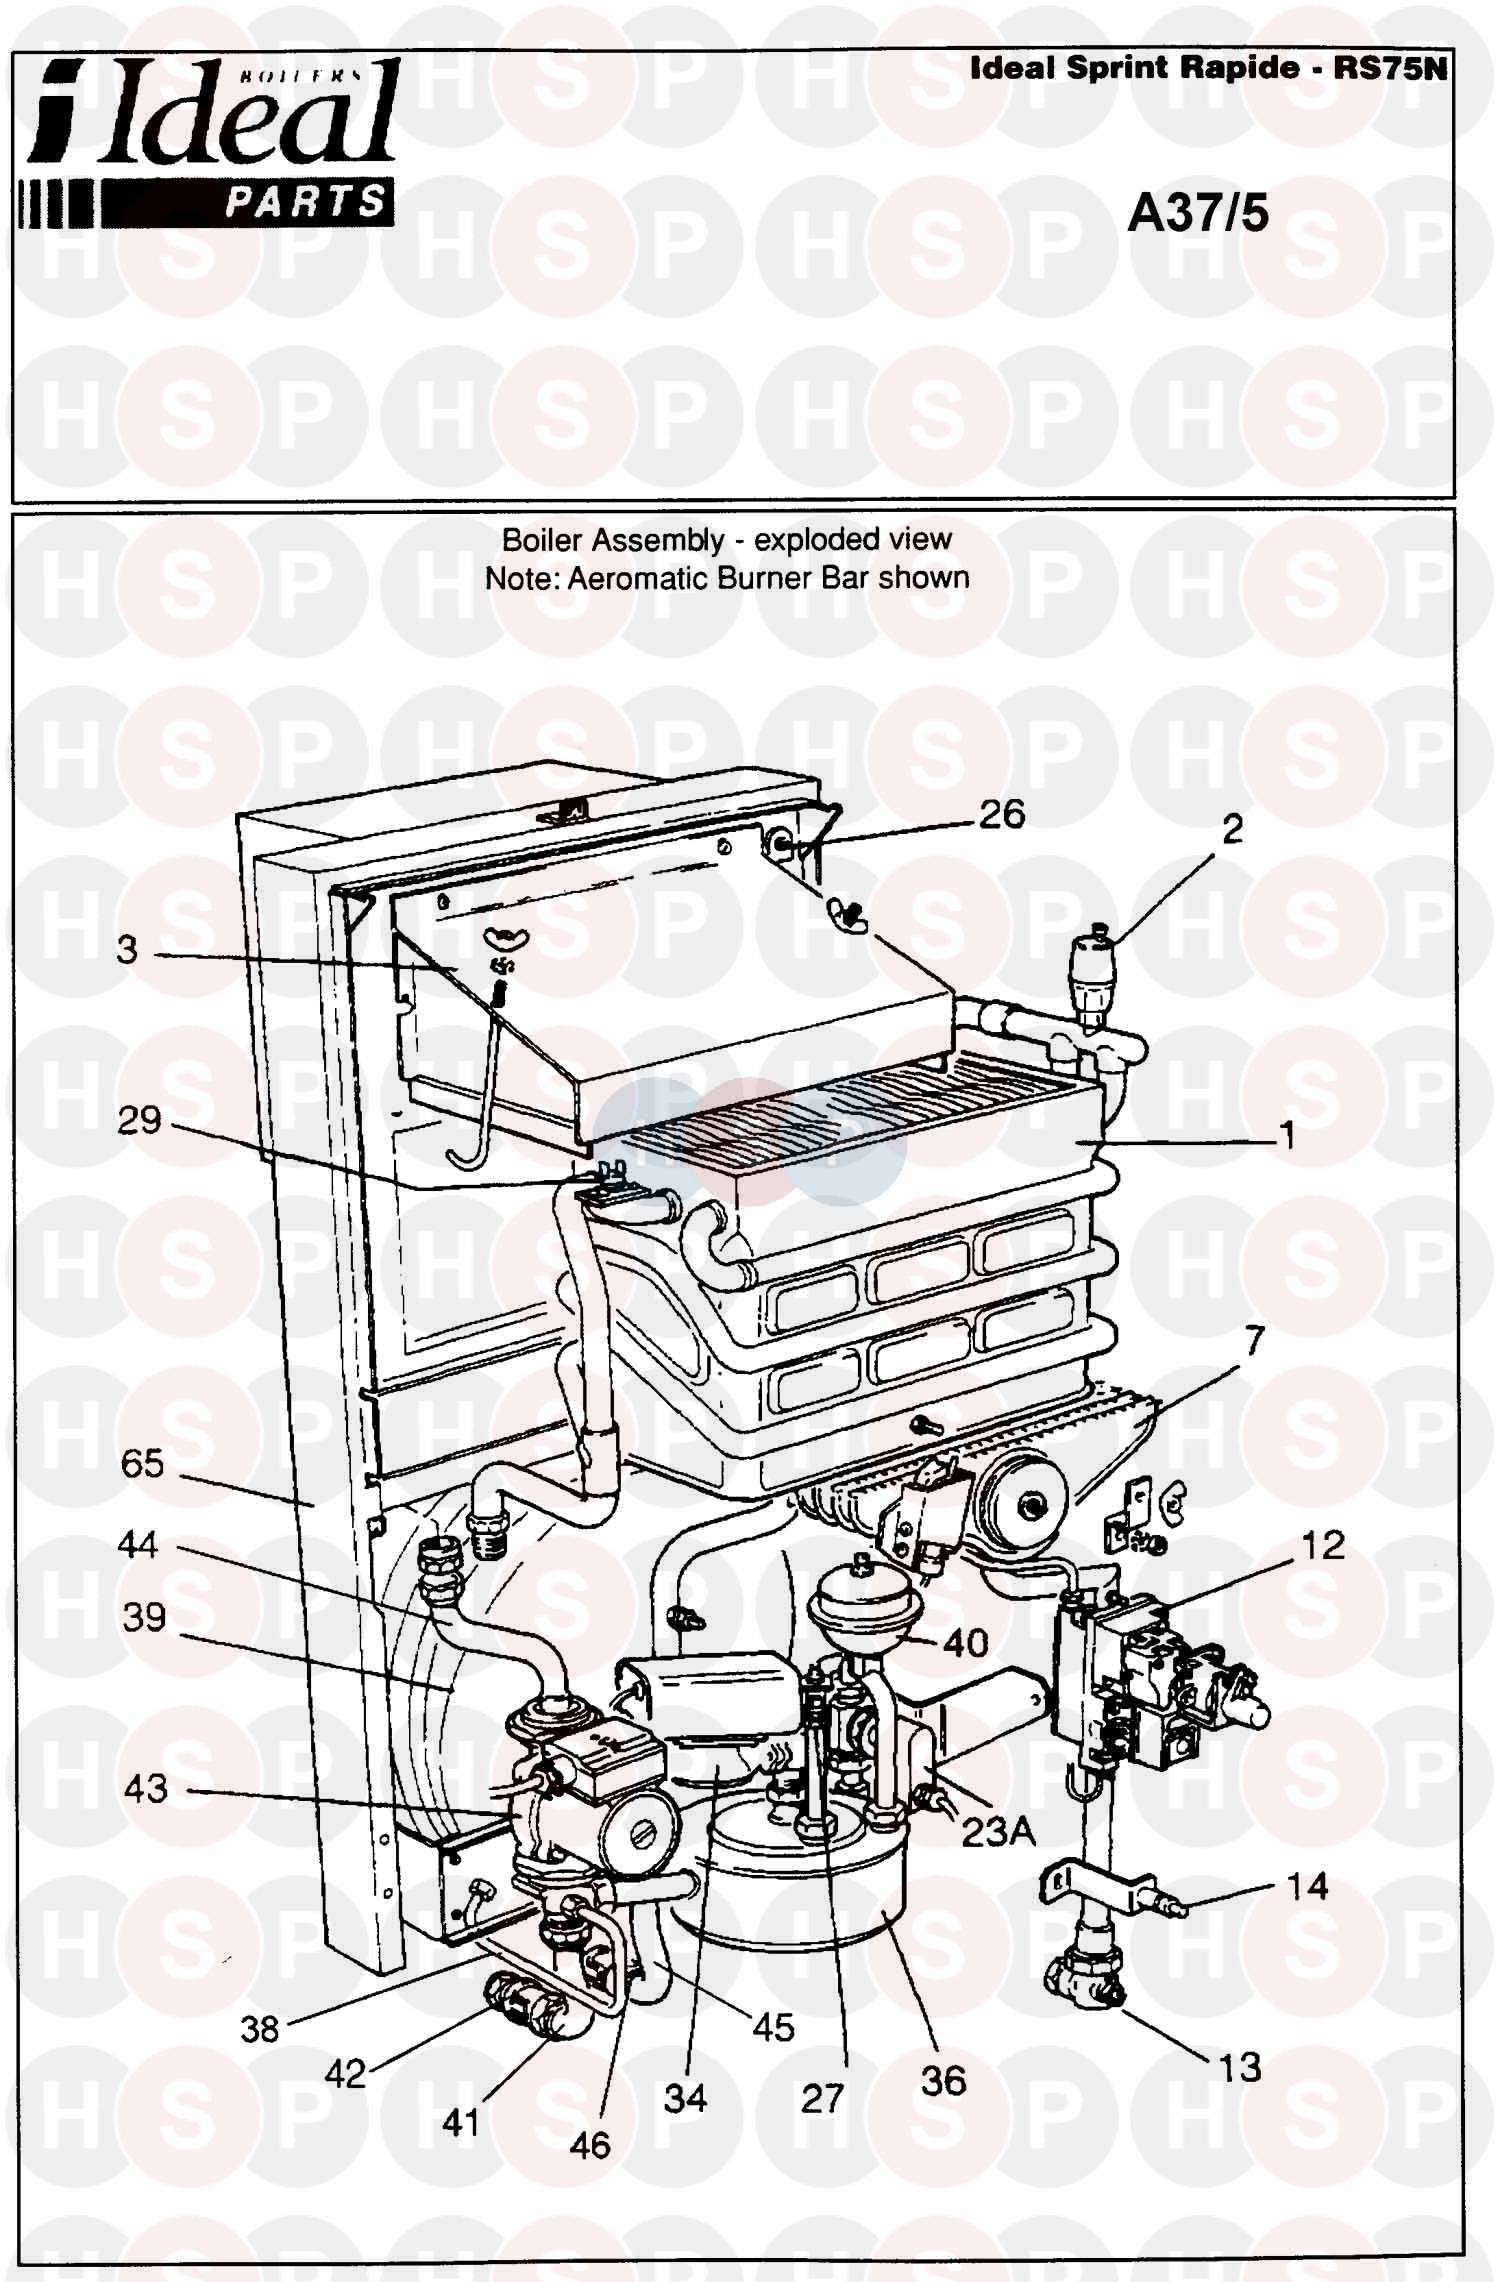 Ideal SPRINT RAPIDE RS 75N (BOILER ASSEMBLY 1) Diagram